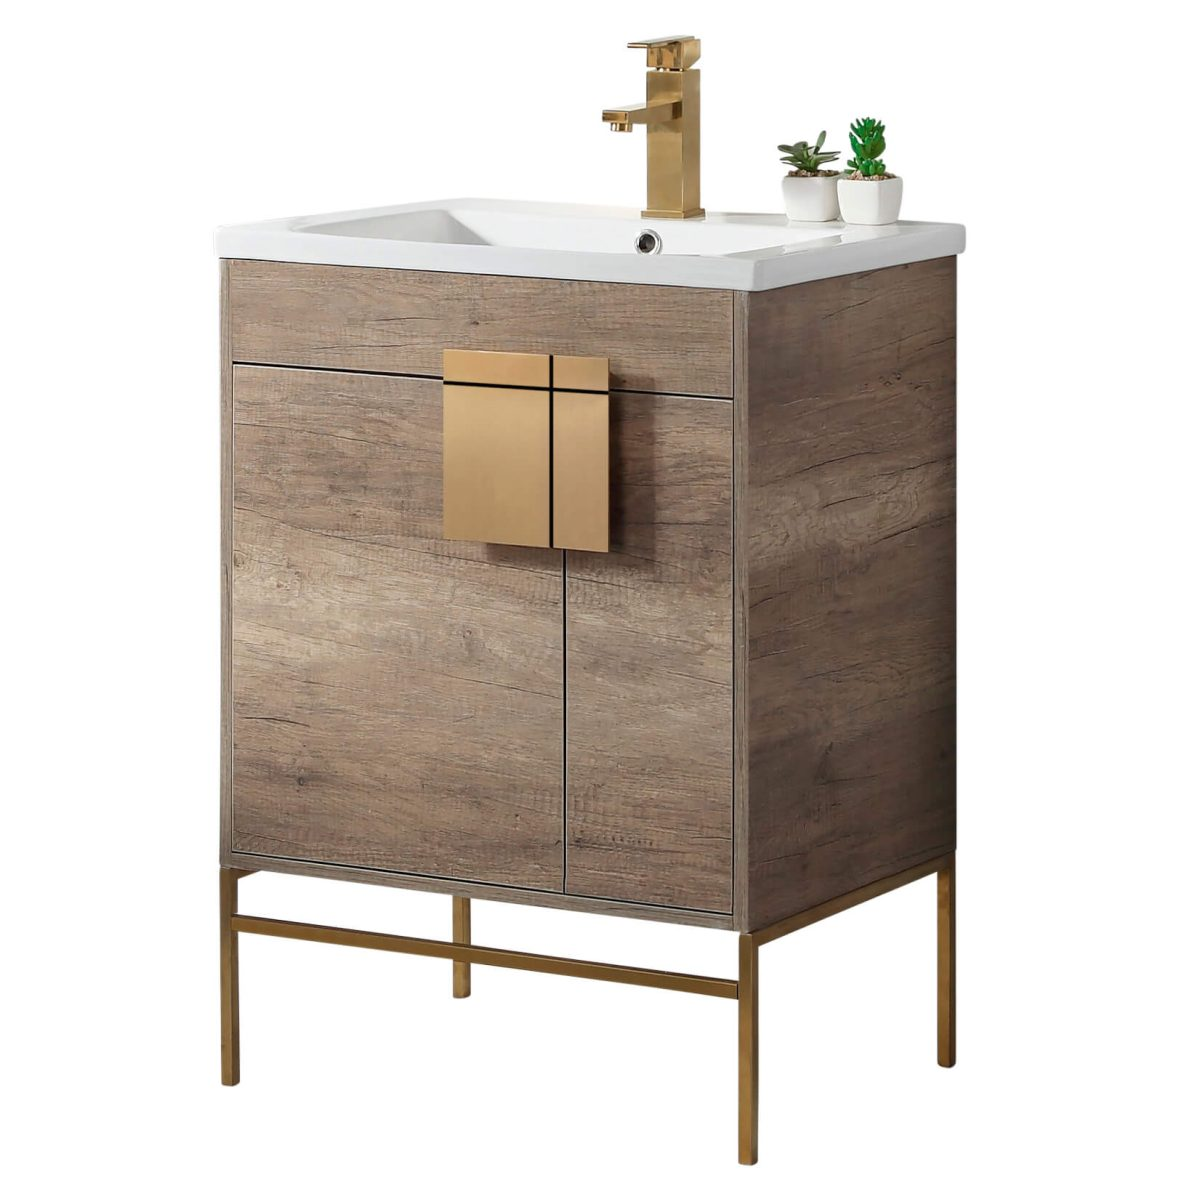 "Shawbridge 24"" Modern Bathroom Vanity  Shadow Gray with Satin Brass Hardware"